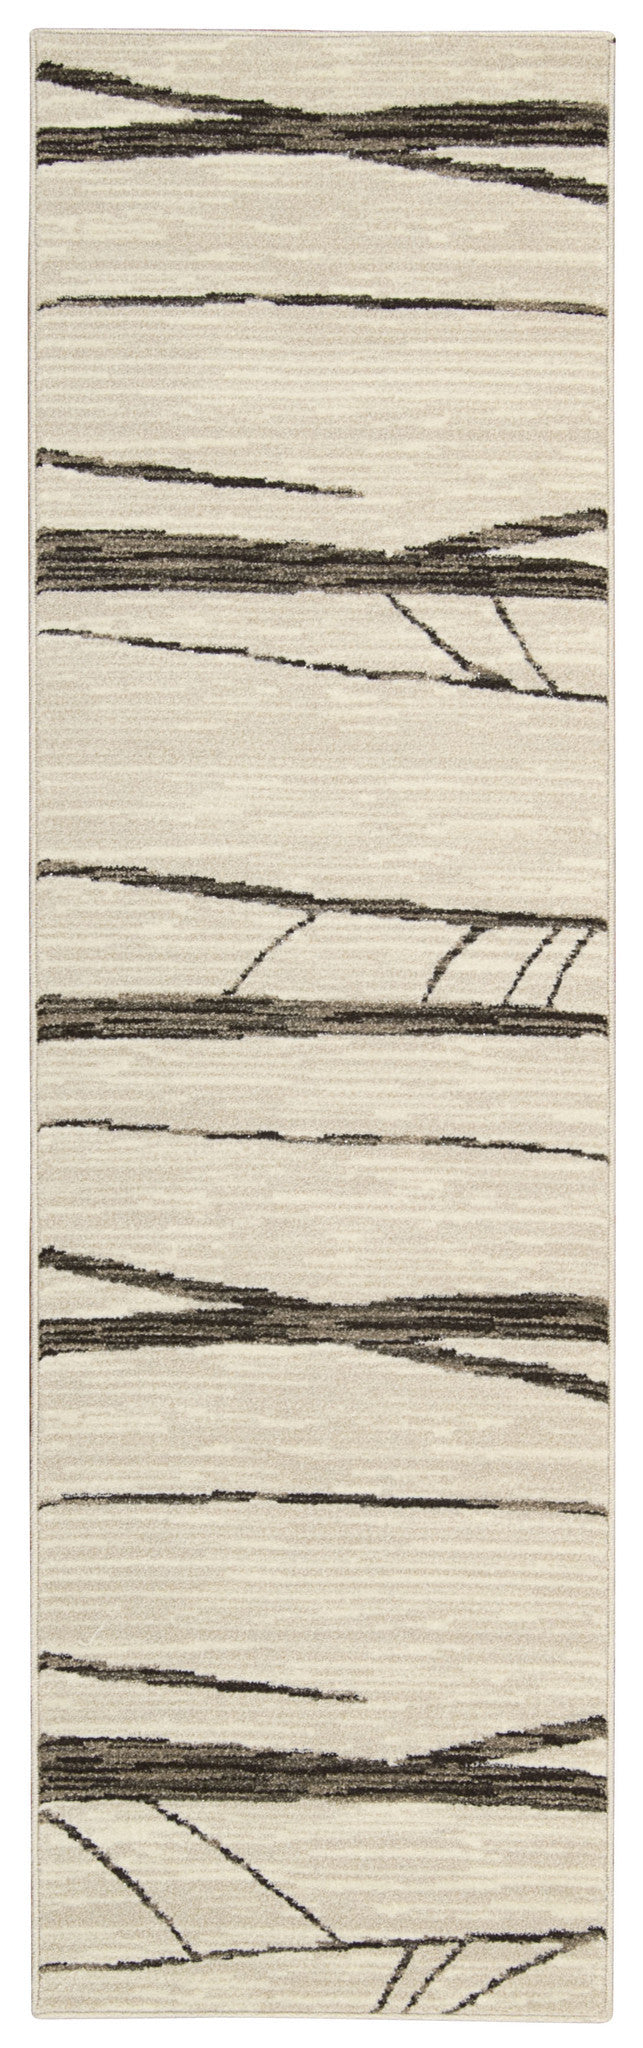 Michael Amini Glistening Nights Ivory Area Rug By Nourison MA512 IV